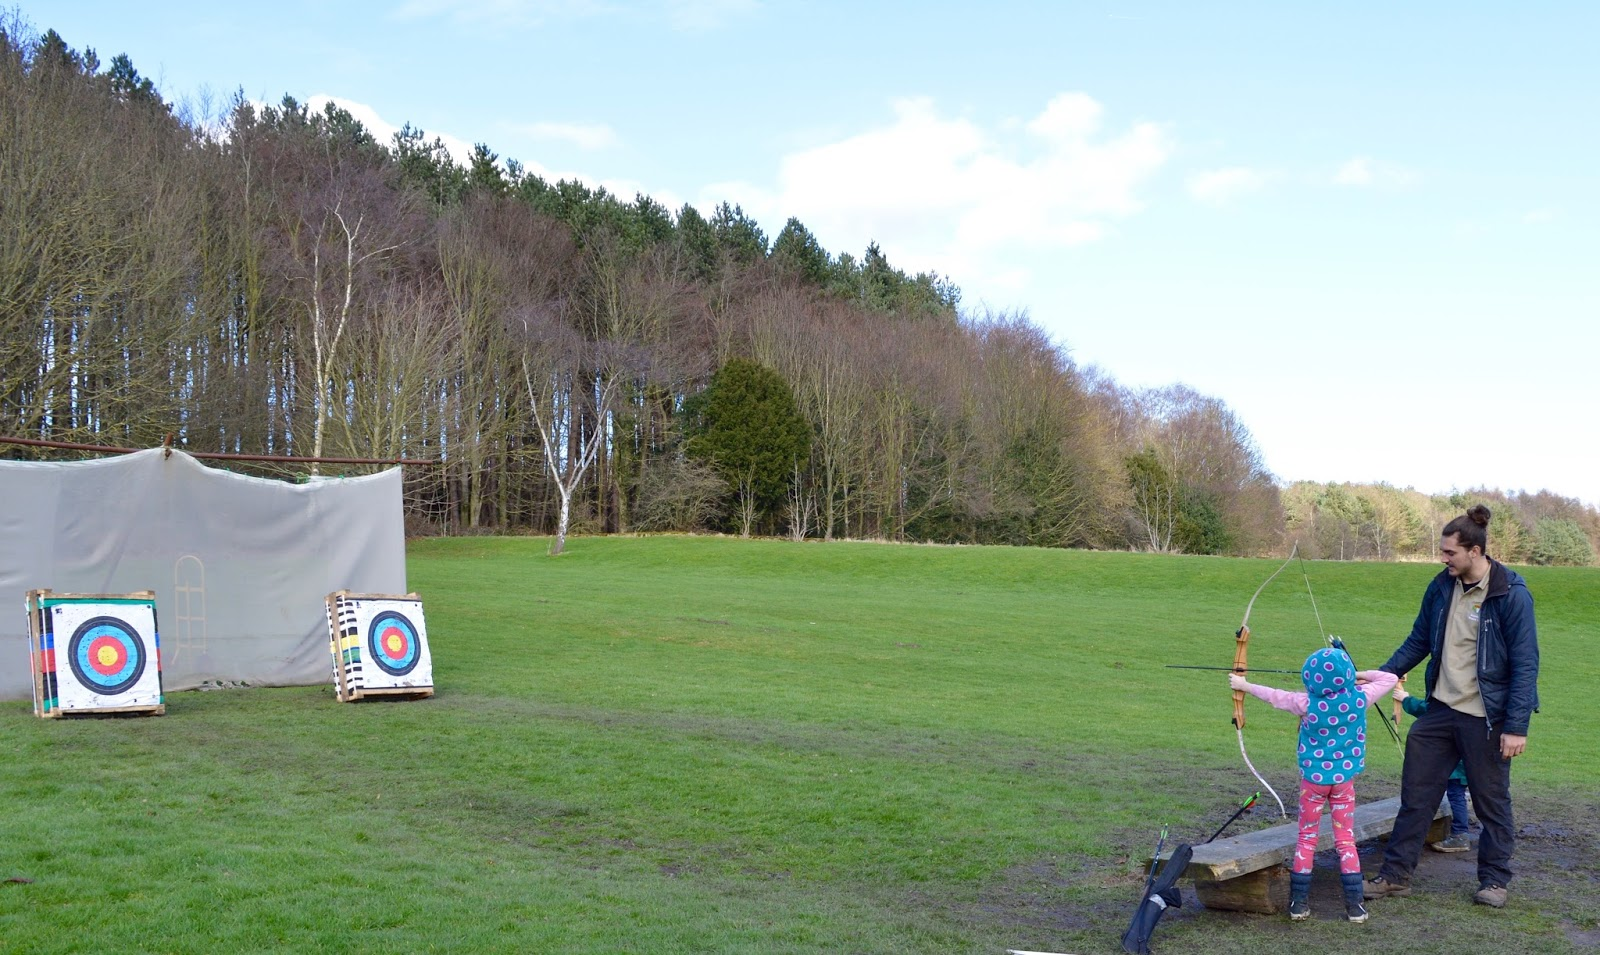 Beamish Wild | School Holiday Club & Activities in County Durham | North East England - kids archery